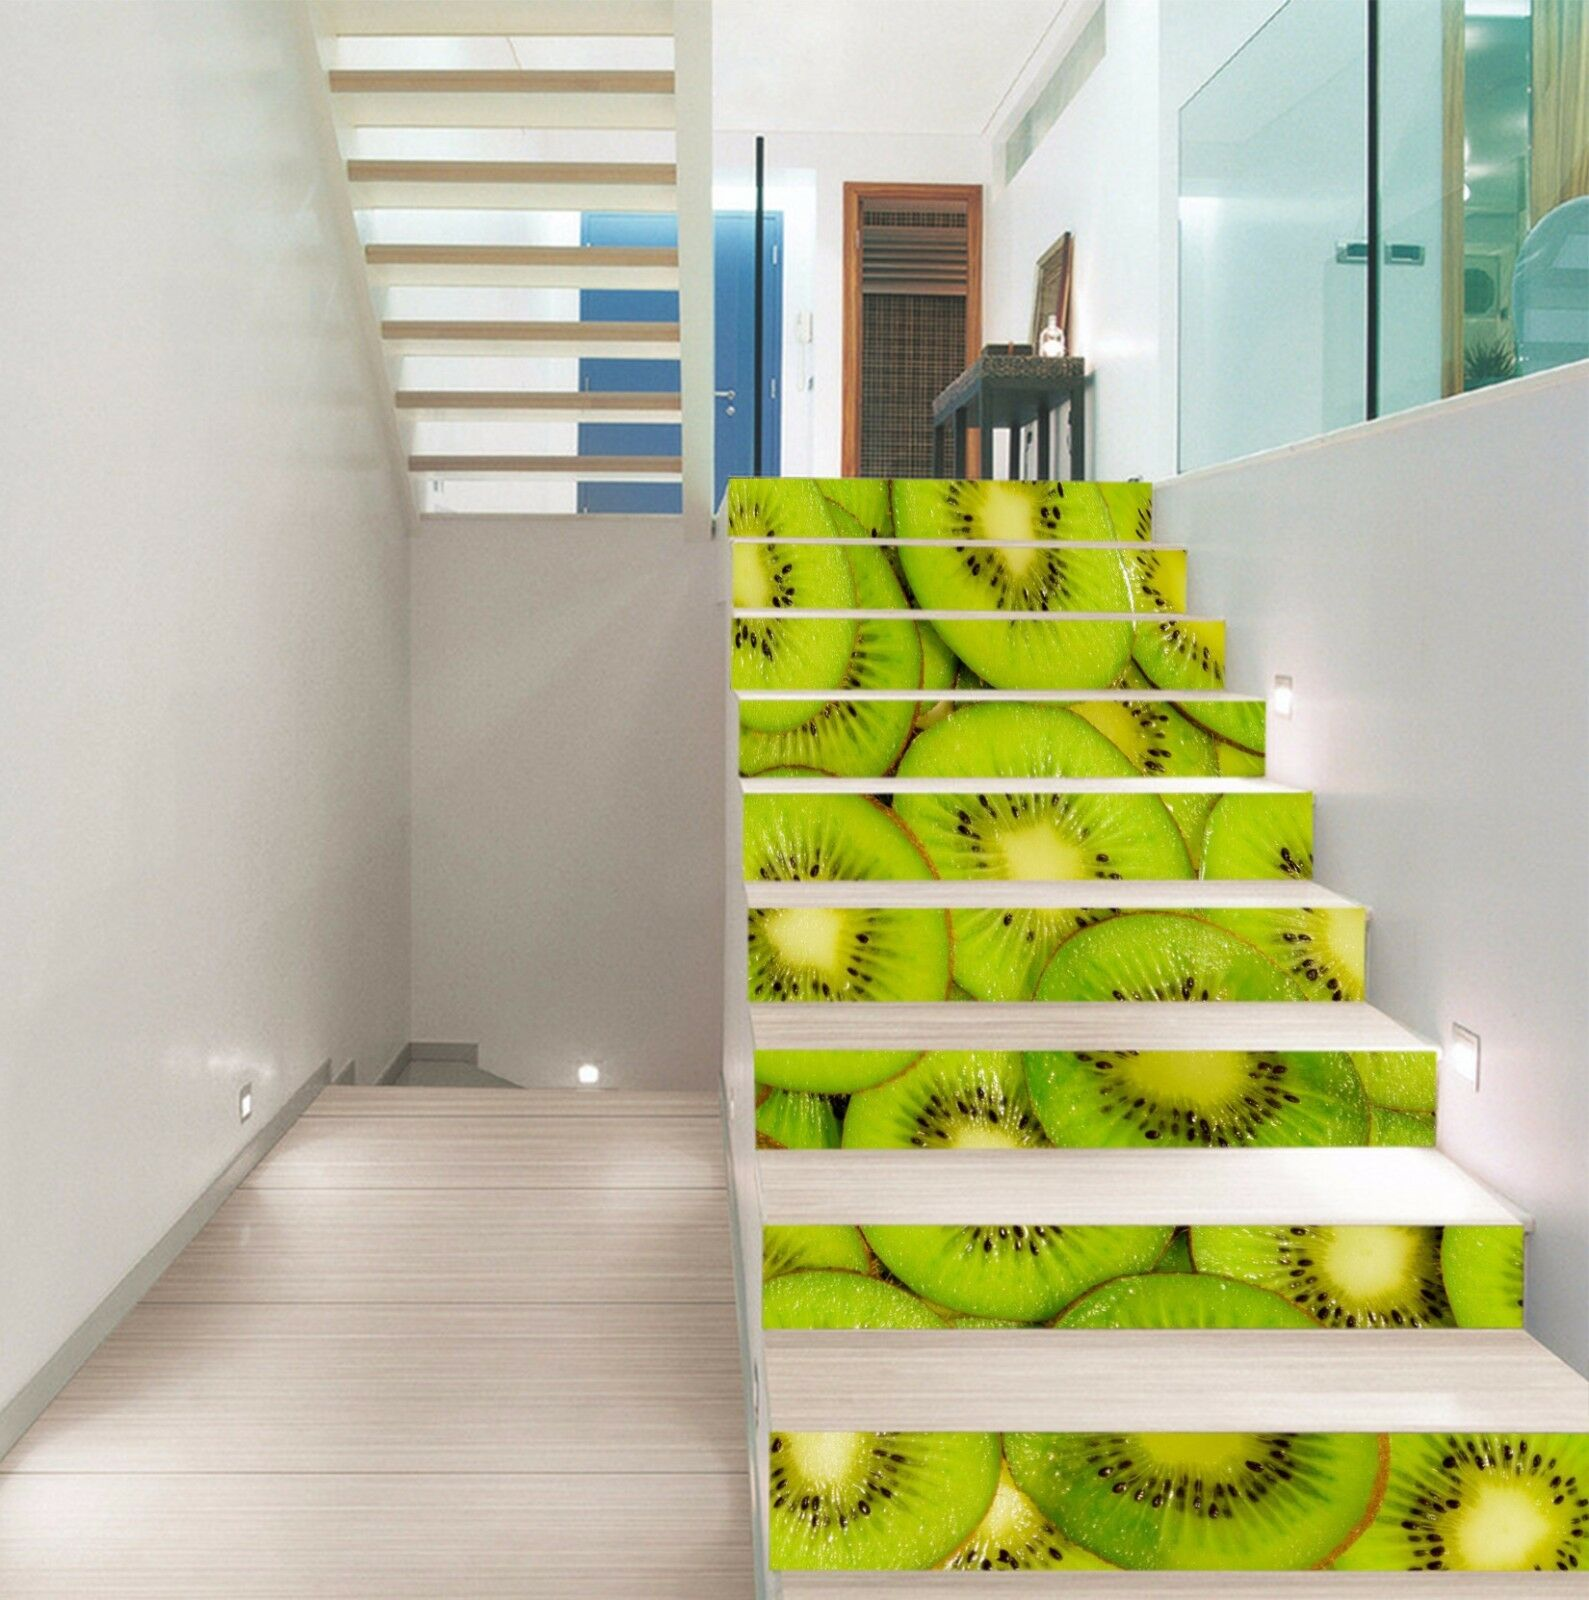 3D Grün Kiwi 786 Stair Risers Decoration Photo Mural Vinyl Decal WandPapier AU